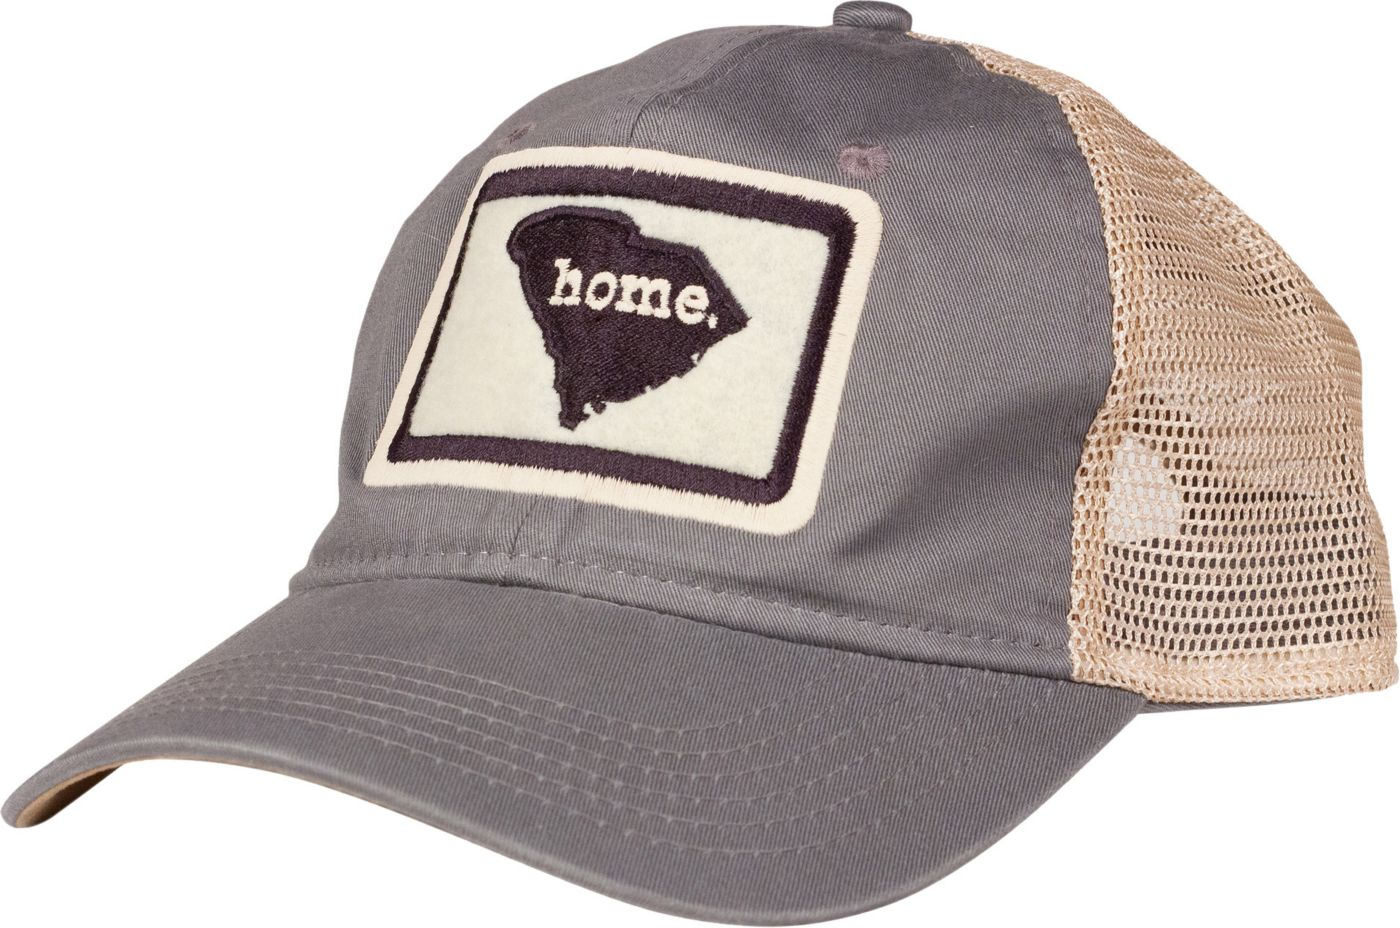 Home State Apparel Adult South Carolina Home Trucker Hat